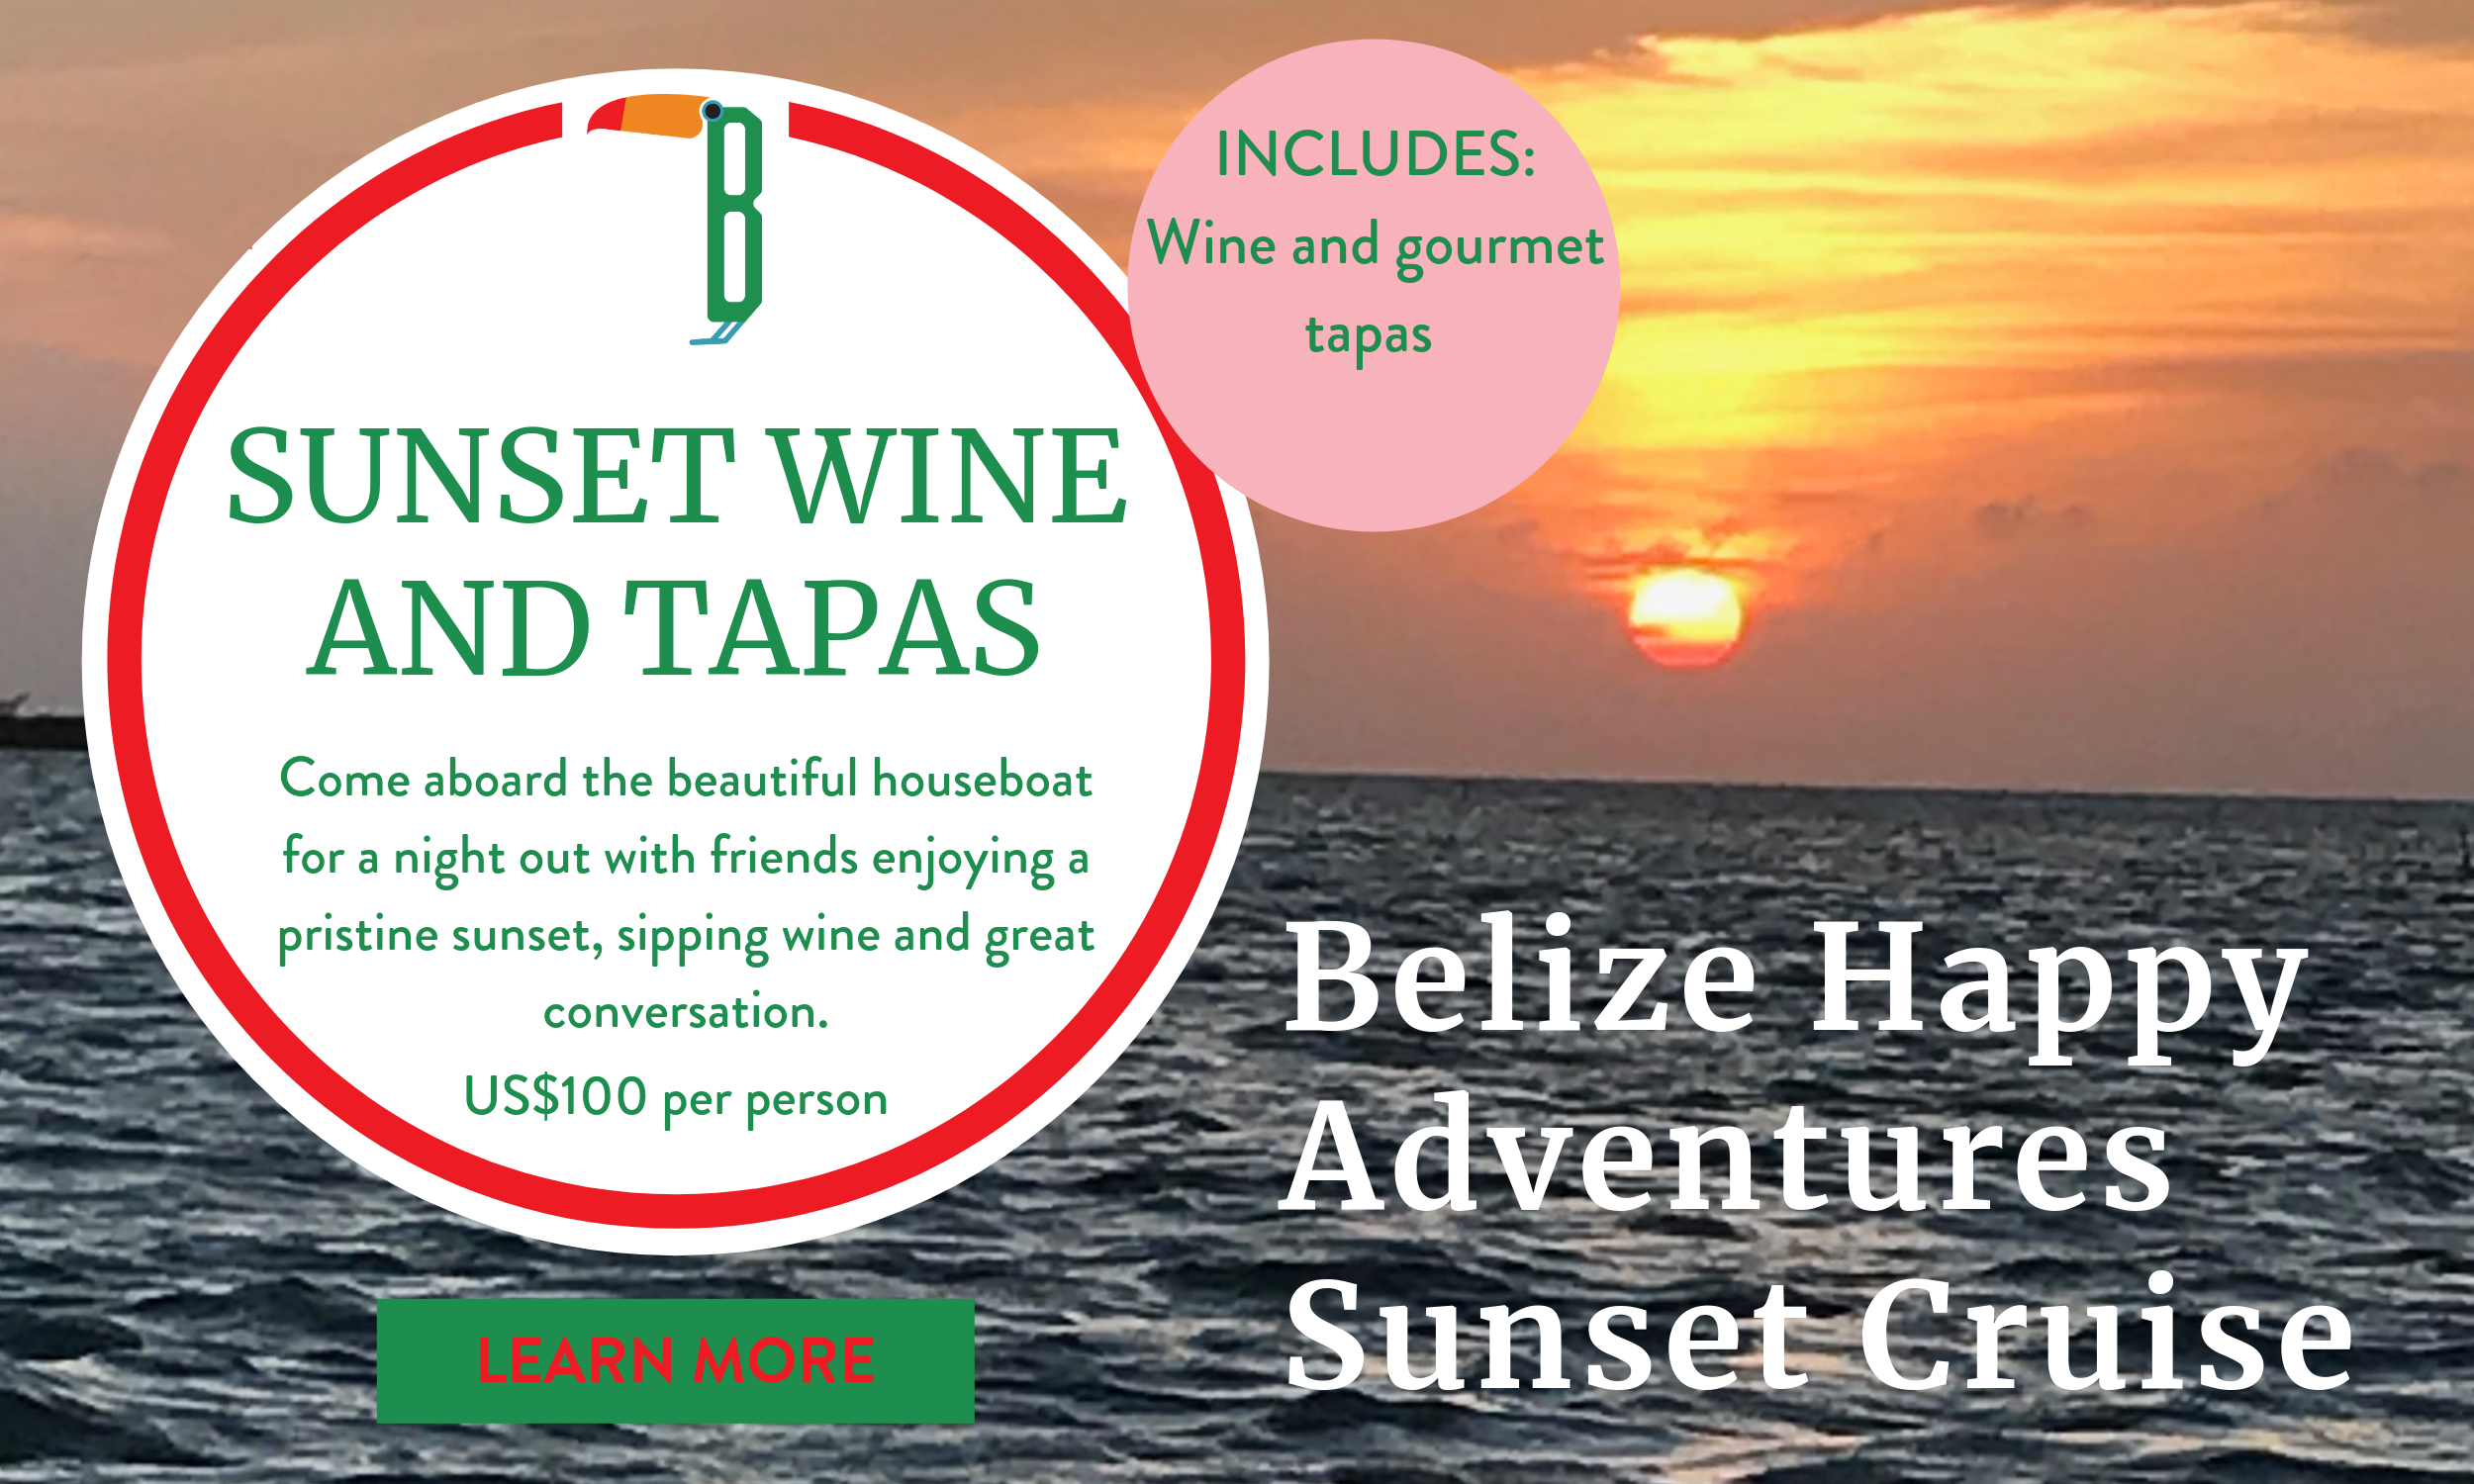 Sunset Wine and Tapas-Seaduced.png